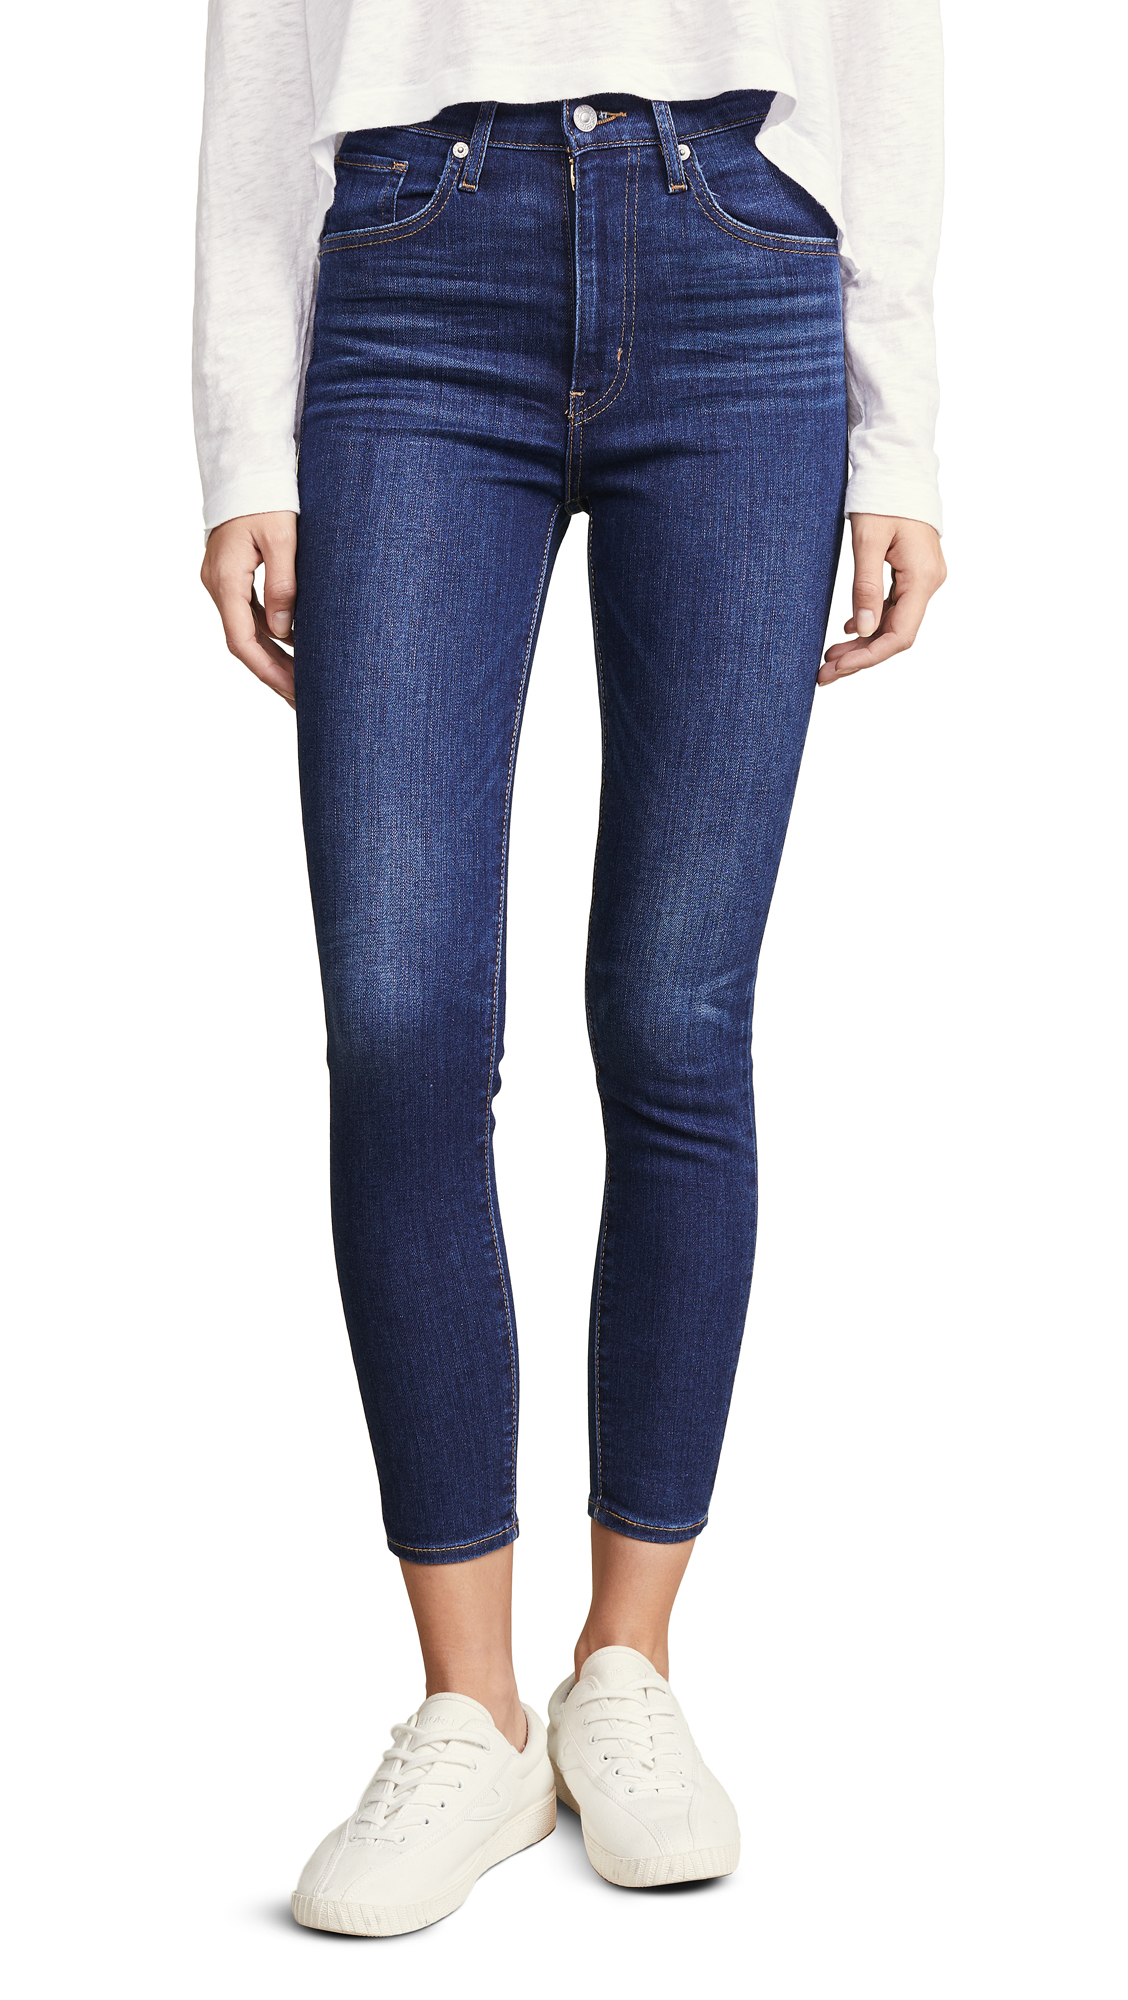 Levis Mile High Ankle Skinny Jeans - And Then Some